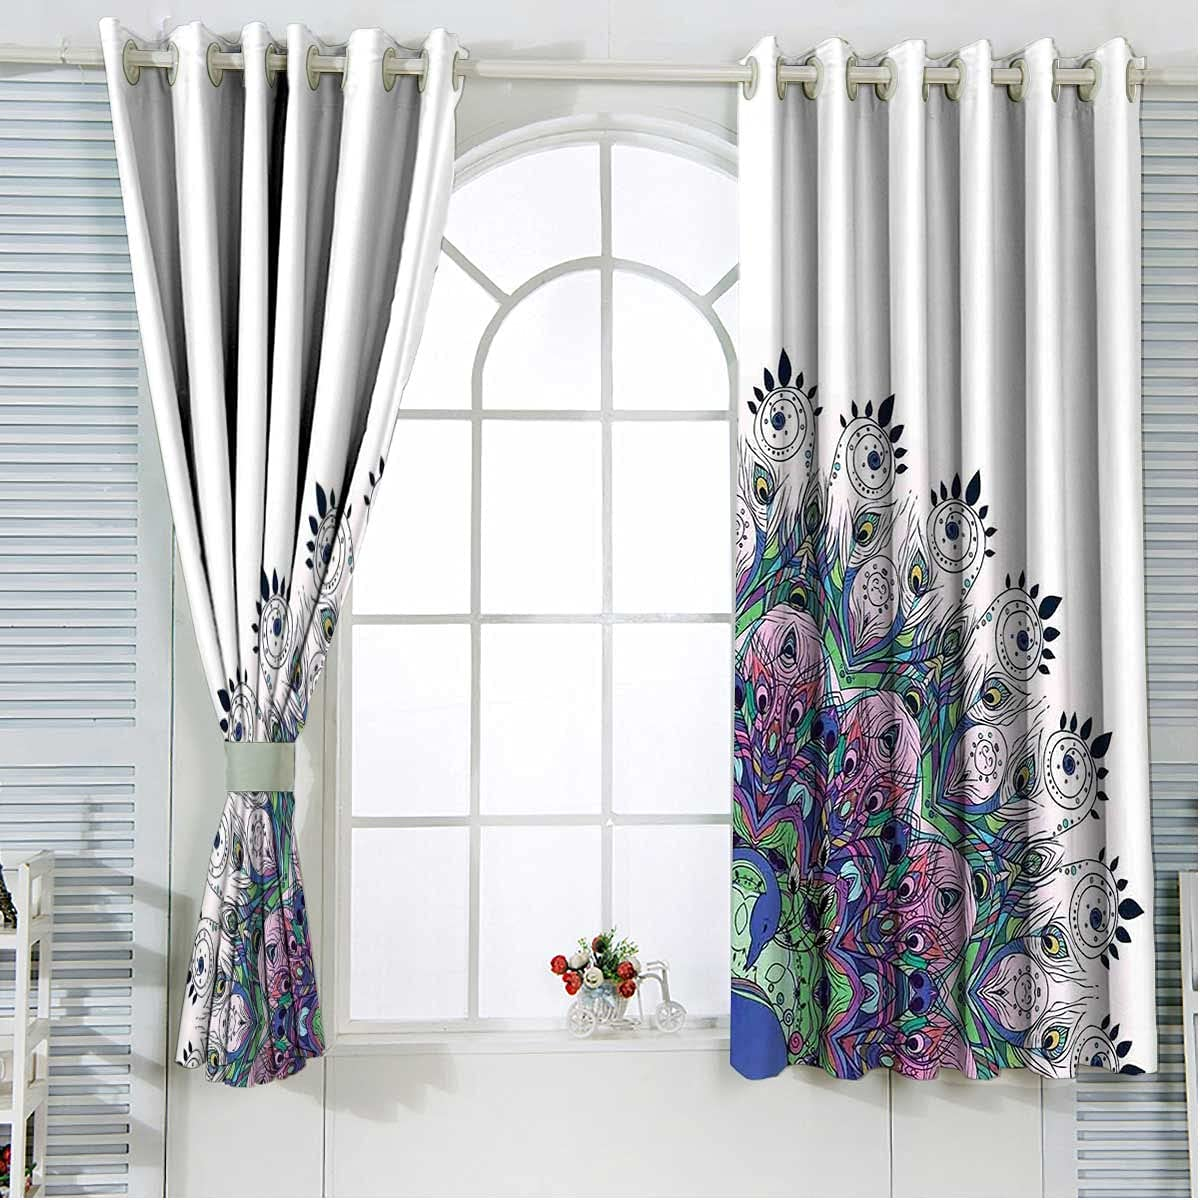 Peacock Popularity Decor Bedroom Blackout Curtains Kitche Max 51% OFF 84 Length Inches